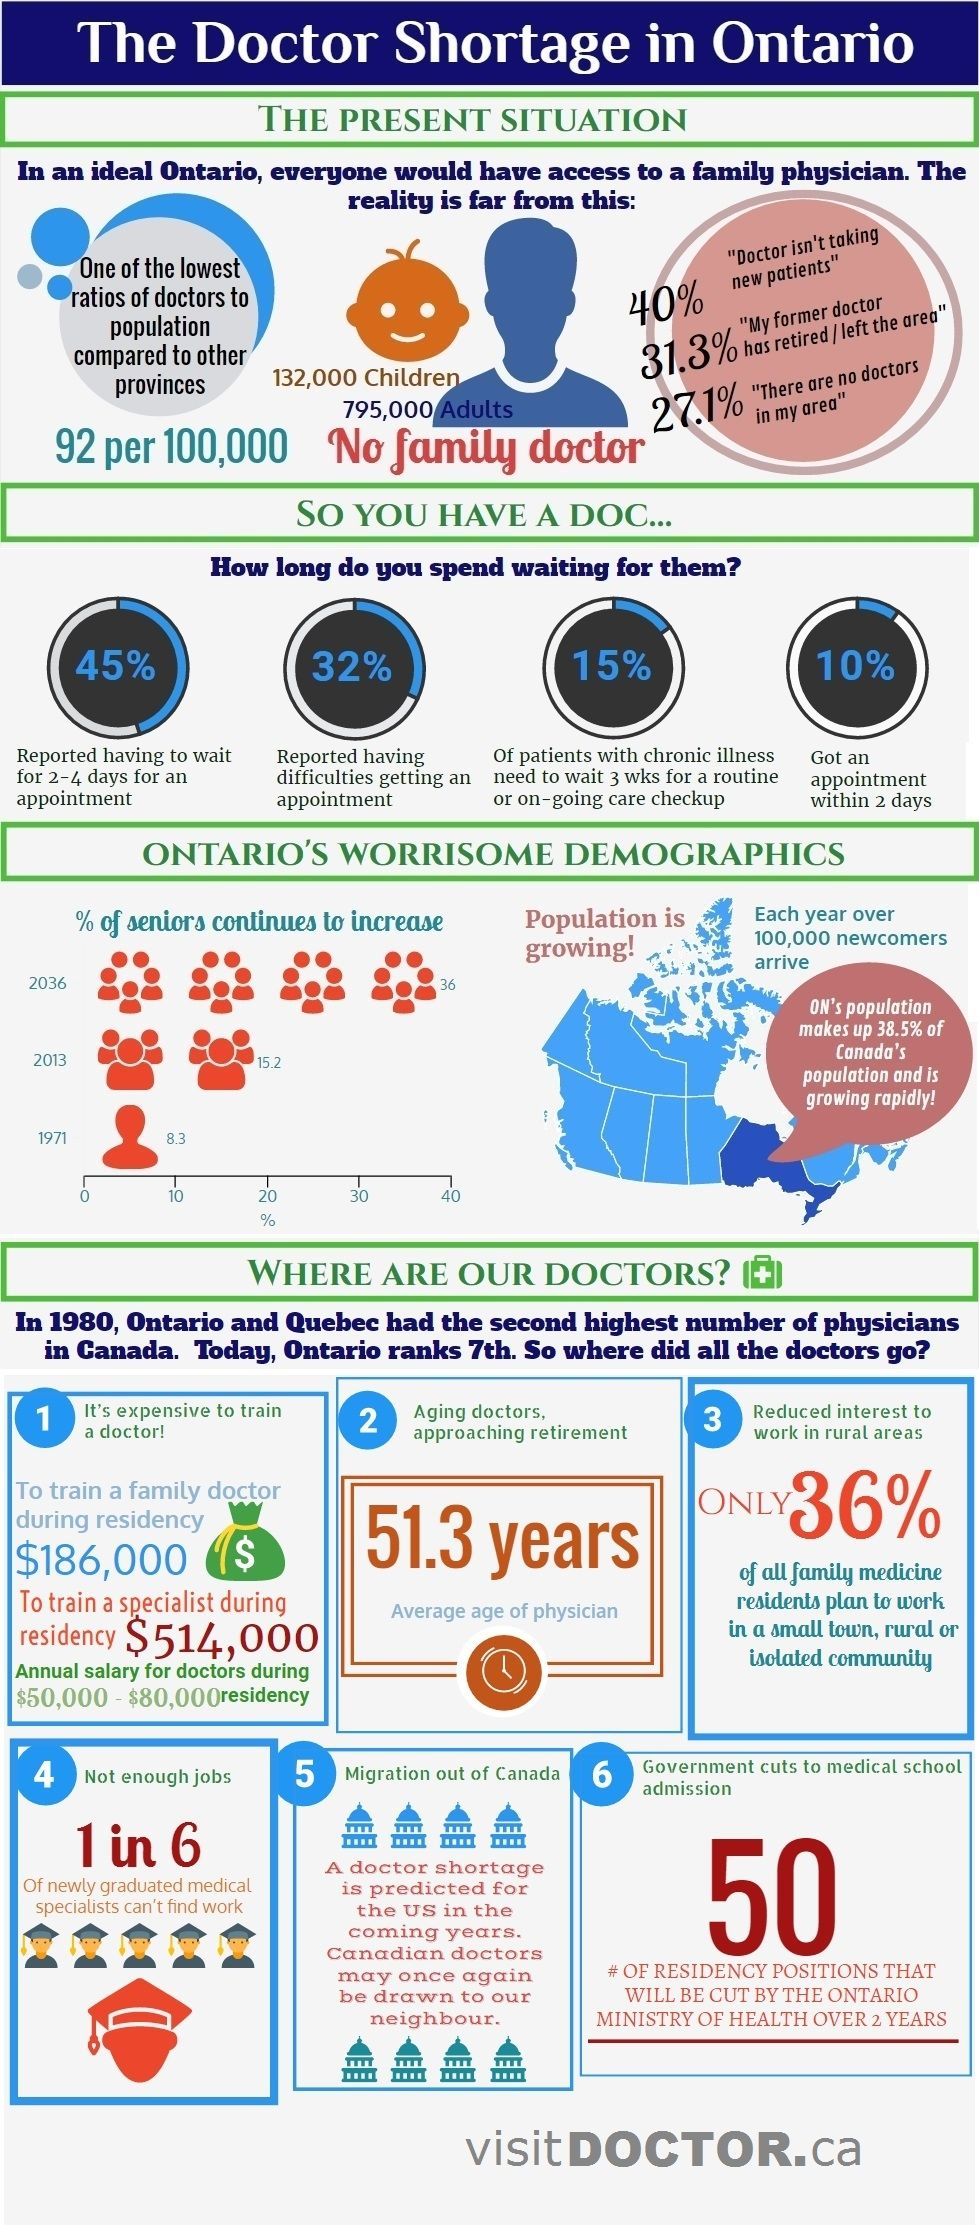 The Doctor Shortage in Ontario in 2020 Infographic